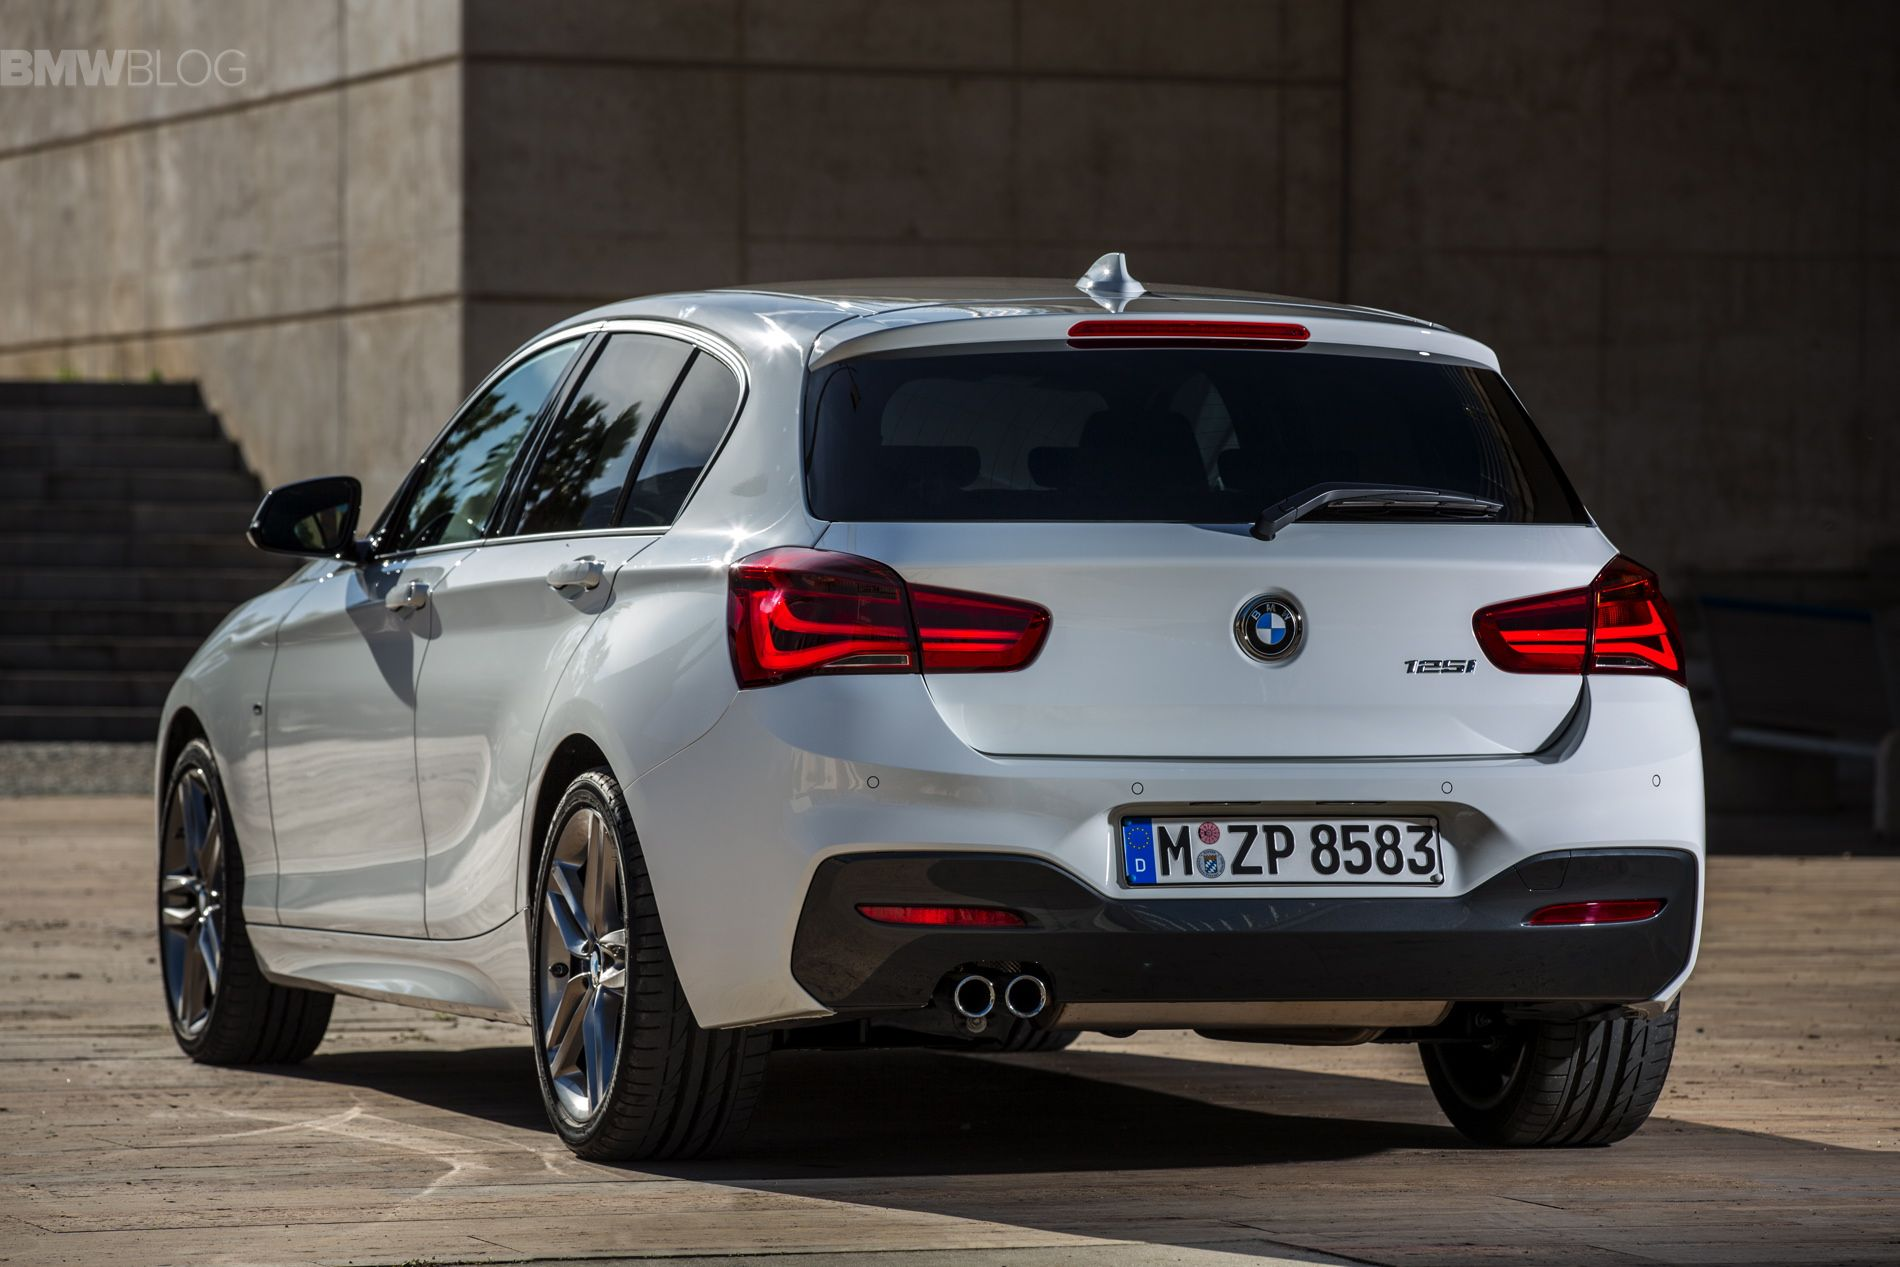 2015 BMW 1 Series Facelift with M Sport Package Bmw 1